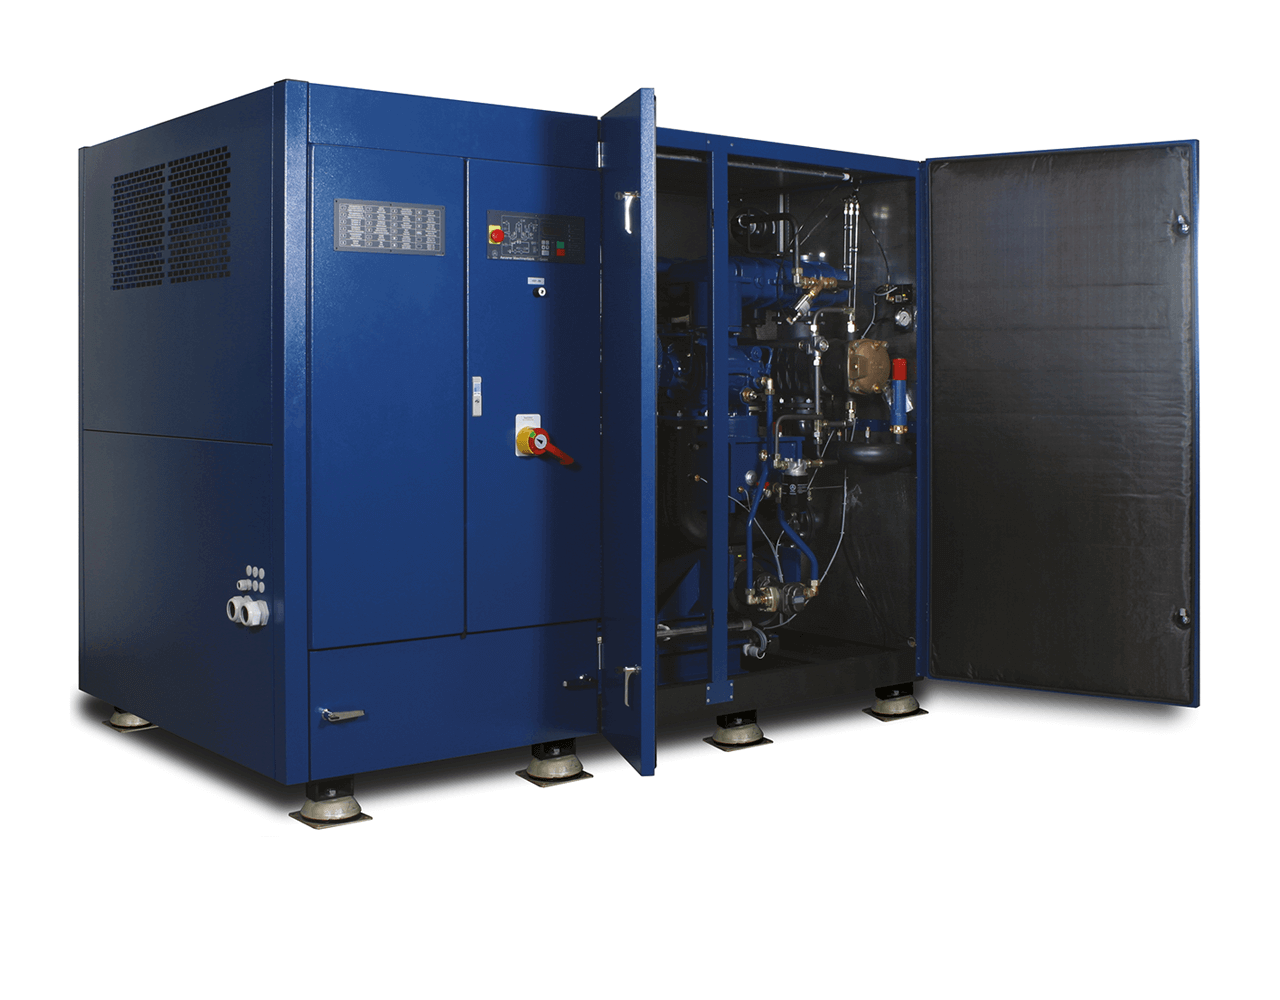 Picture of the new compressed air compressor series DELTA TWIN